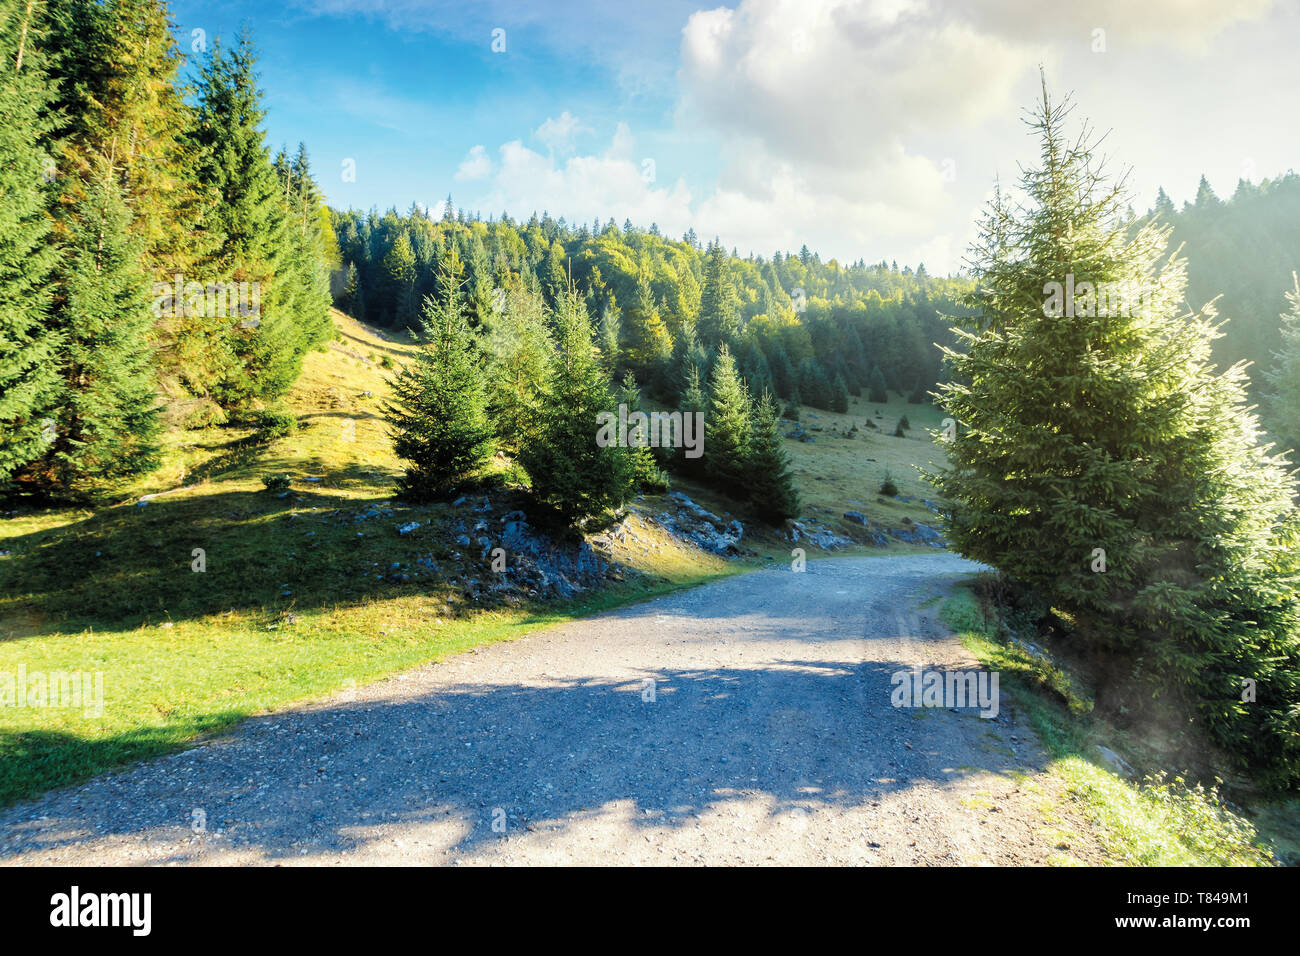 old country road through forest at sunrise.  nature scenery with trees along the way. sunny autumn landscape with clouds on a blue sky. cold foggy wea - Stock Image